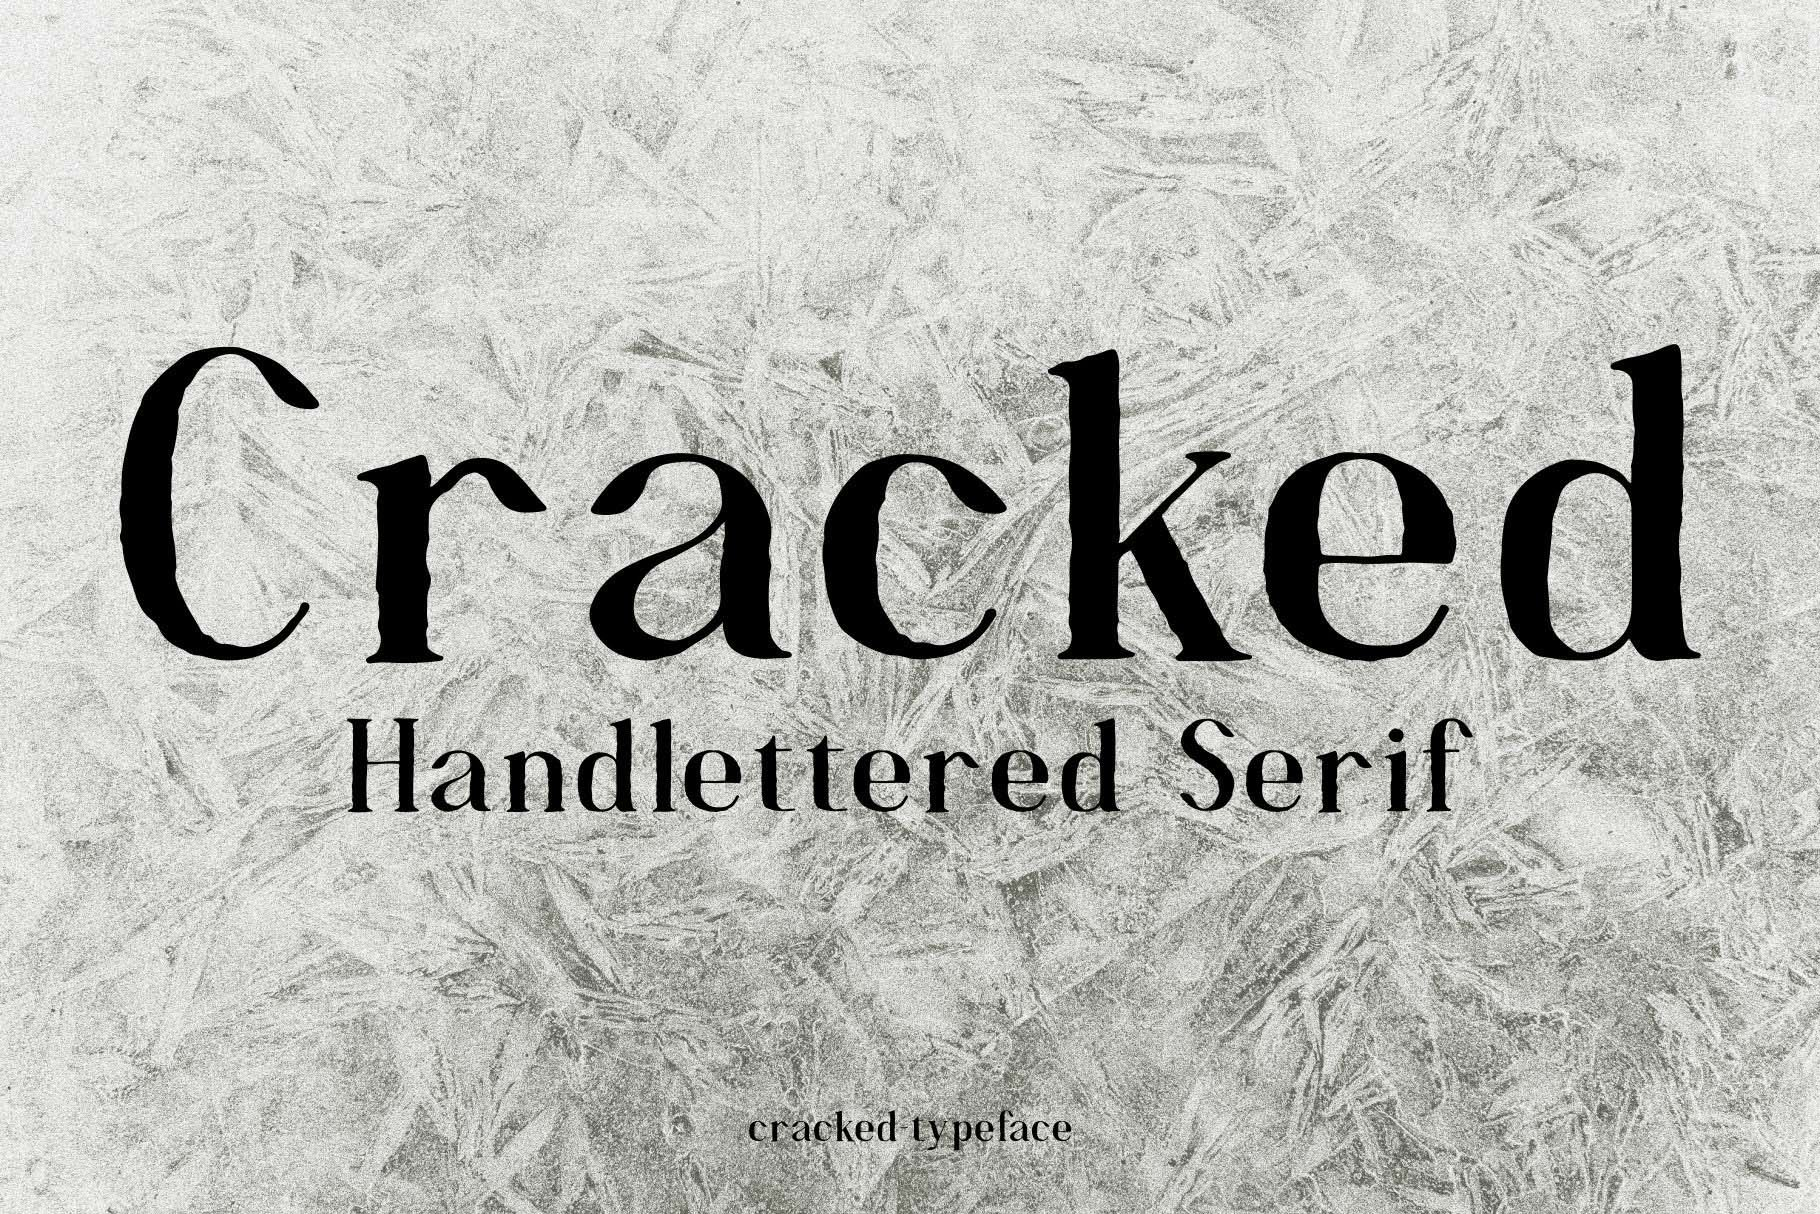 Cracked//A Handlettered Serif example image 7